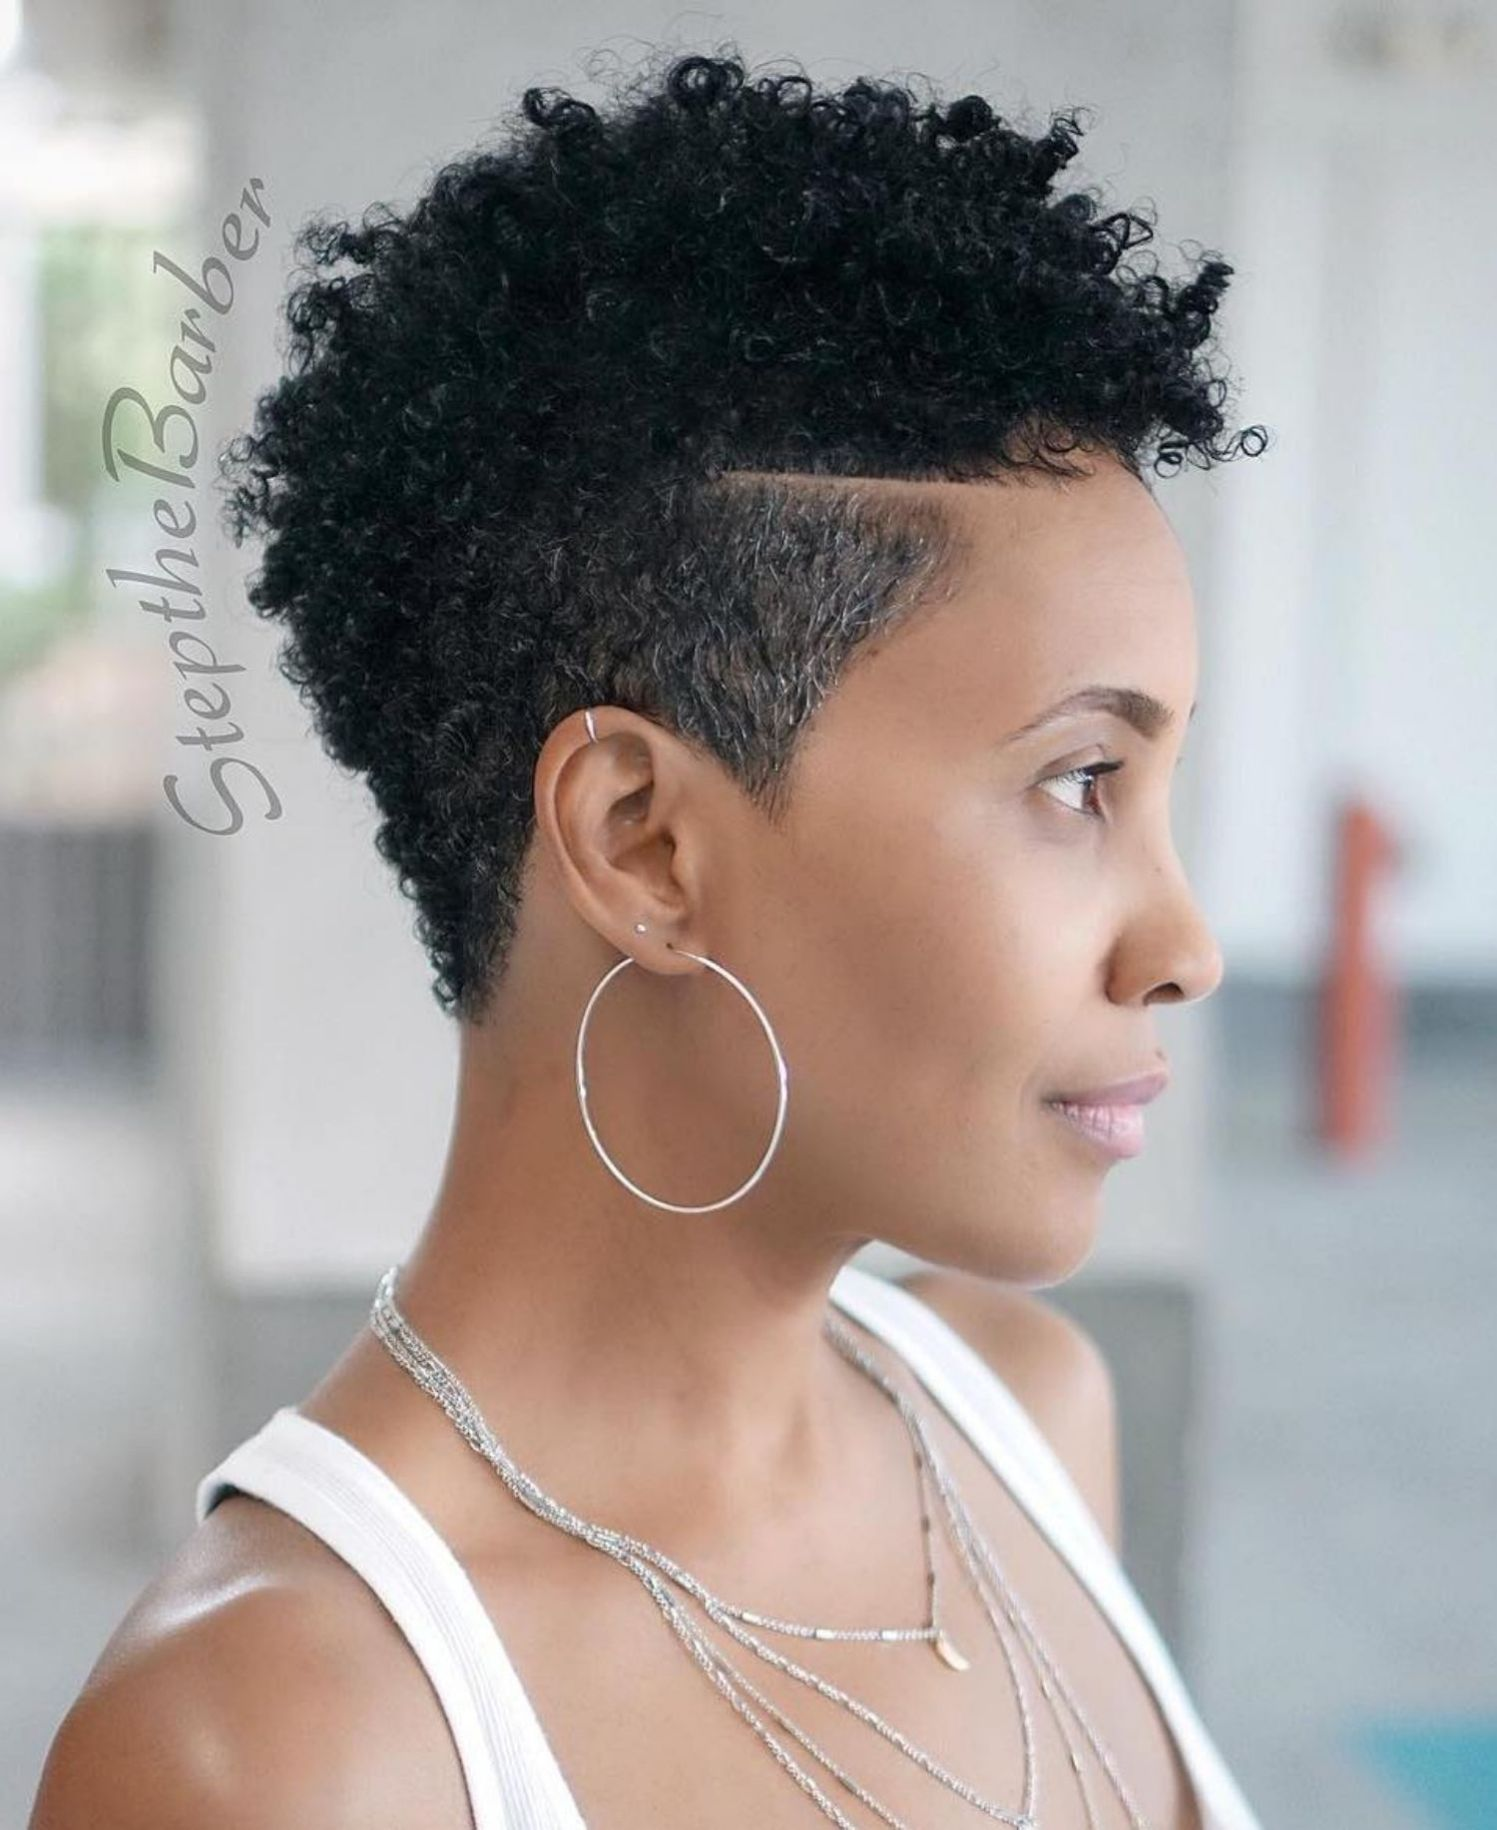 60 Great Short Hairstyles For Black Women Natural Hair Styles Fade Haircut Women Hair Styles